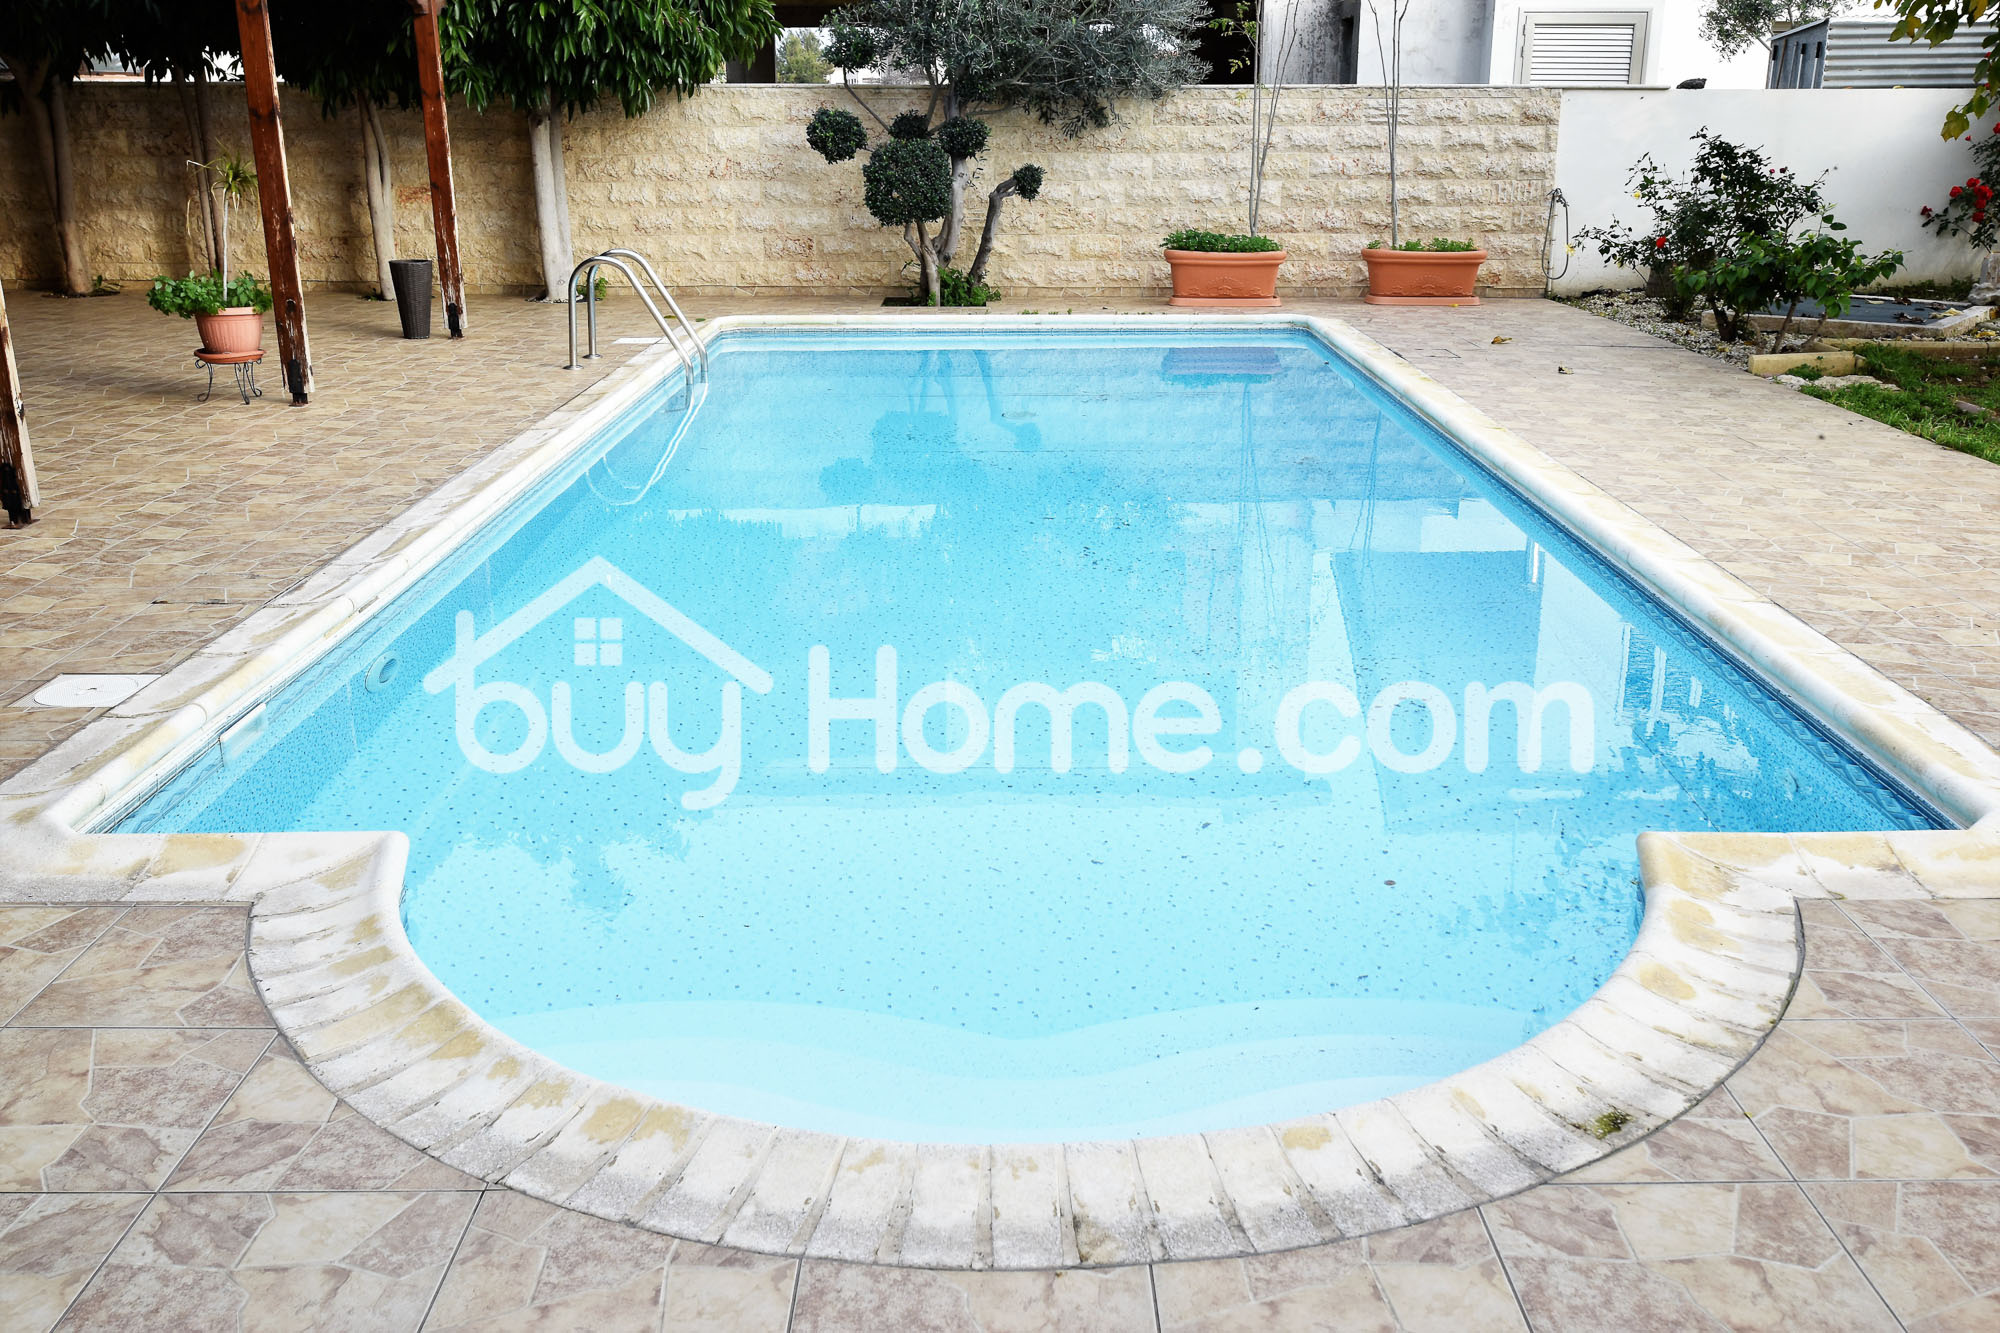 6 Bedroom house with Pool | BuyHome